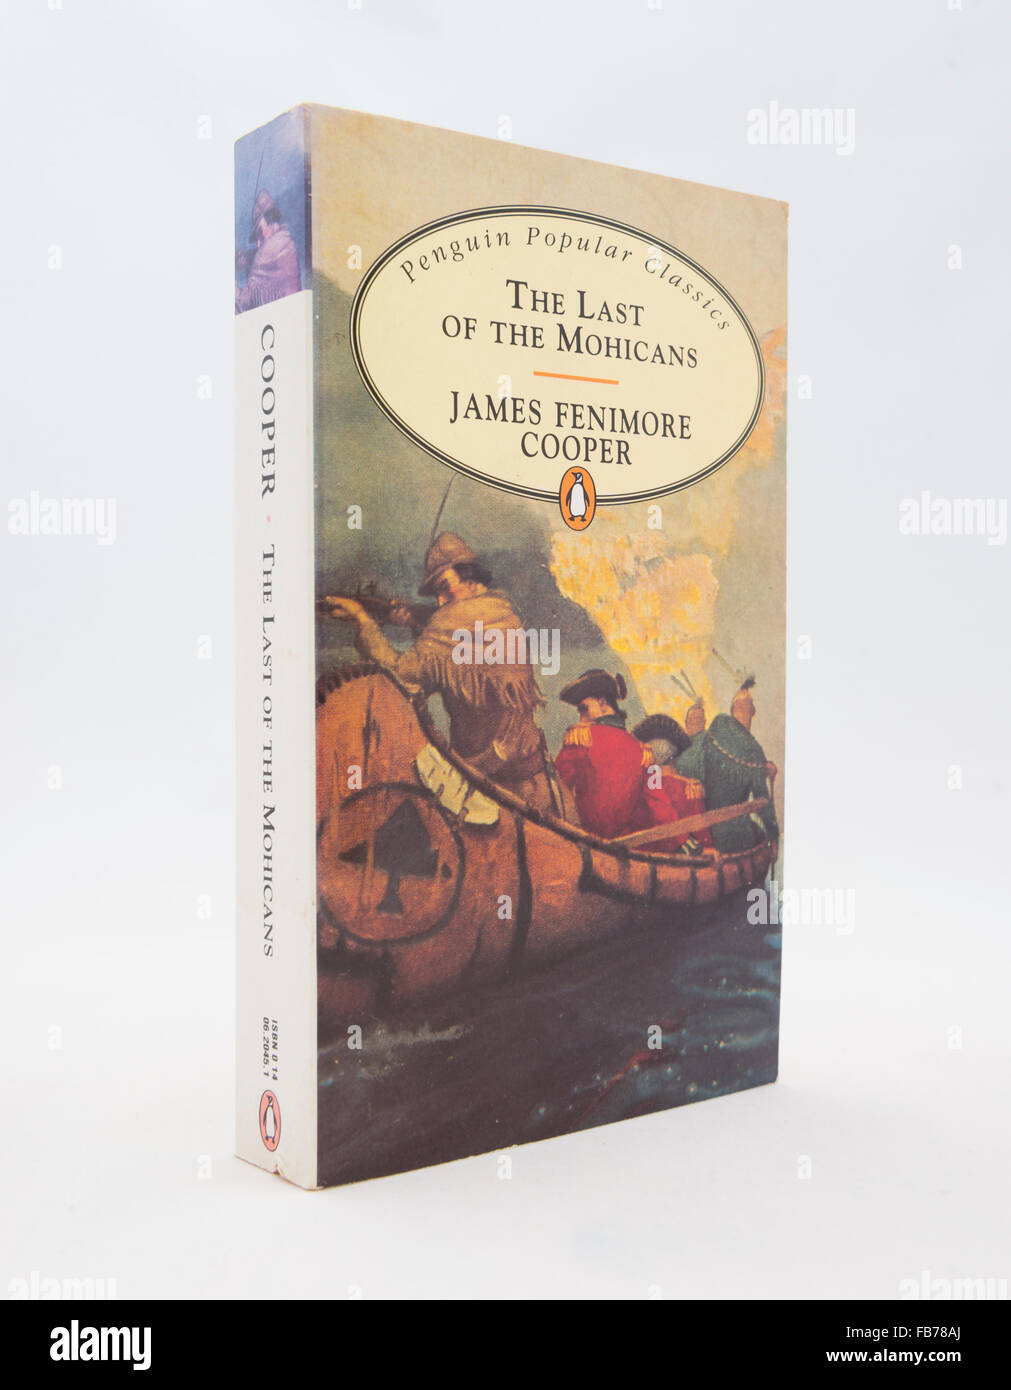 'The Last Of The Mohicans' (1826) by James Fenimore Cooper. A historical novel set in 1757 during the French - Stock Image